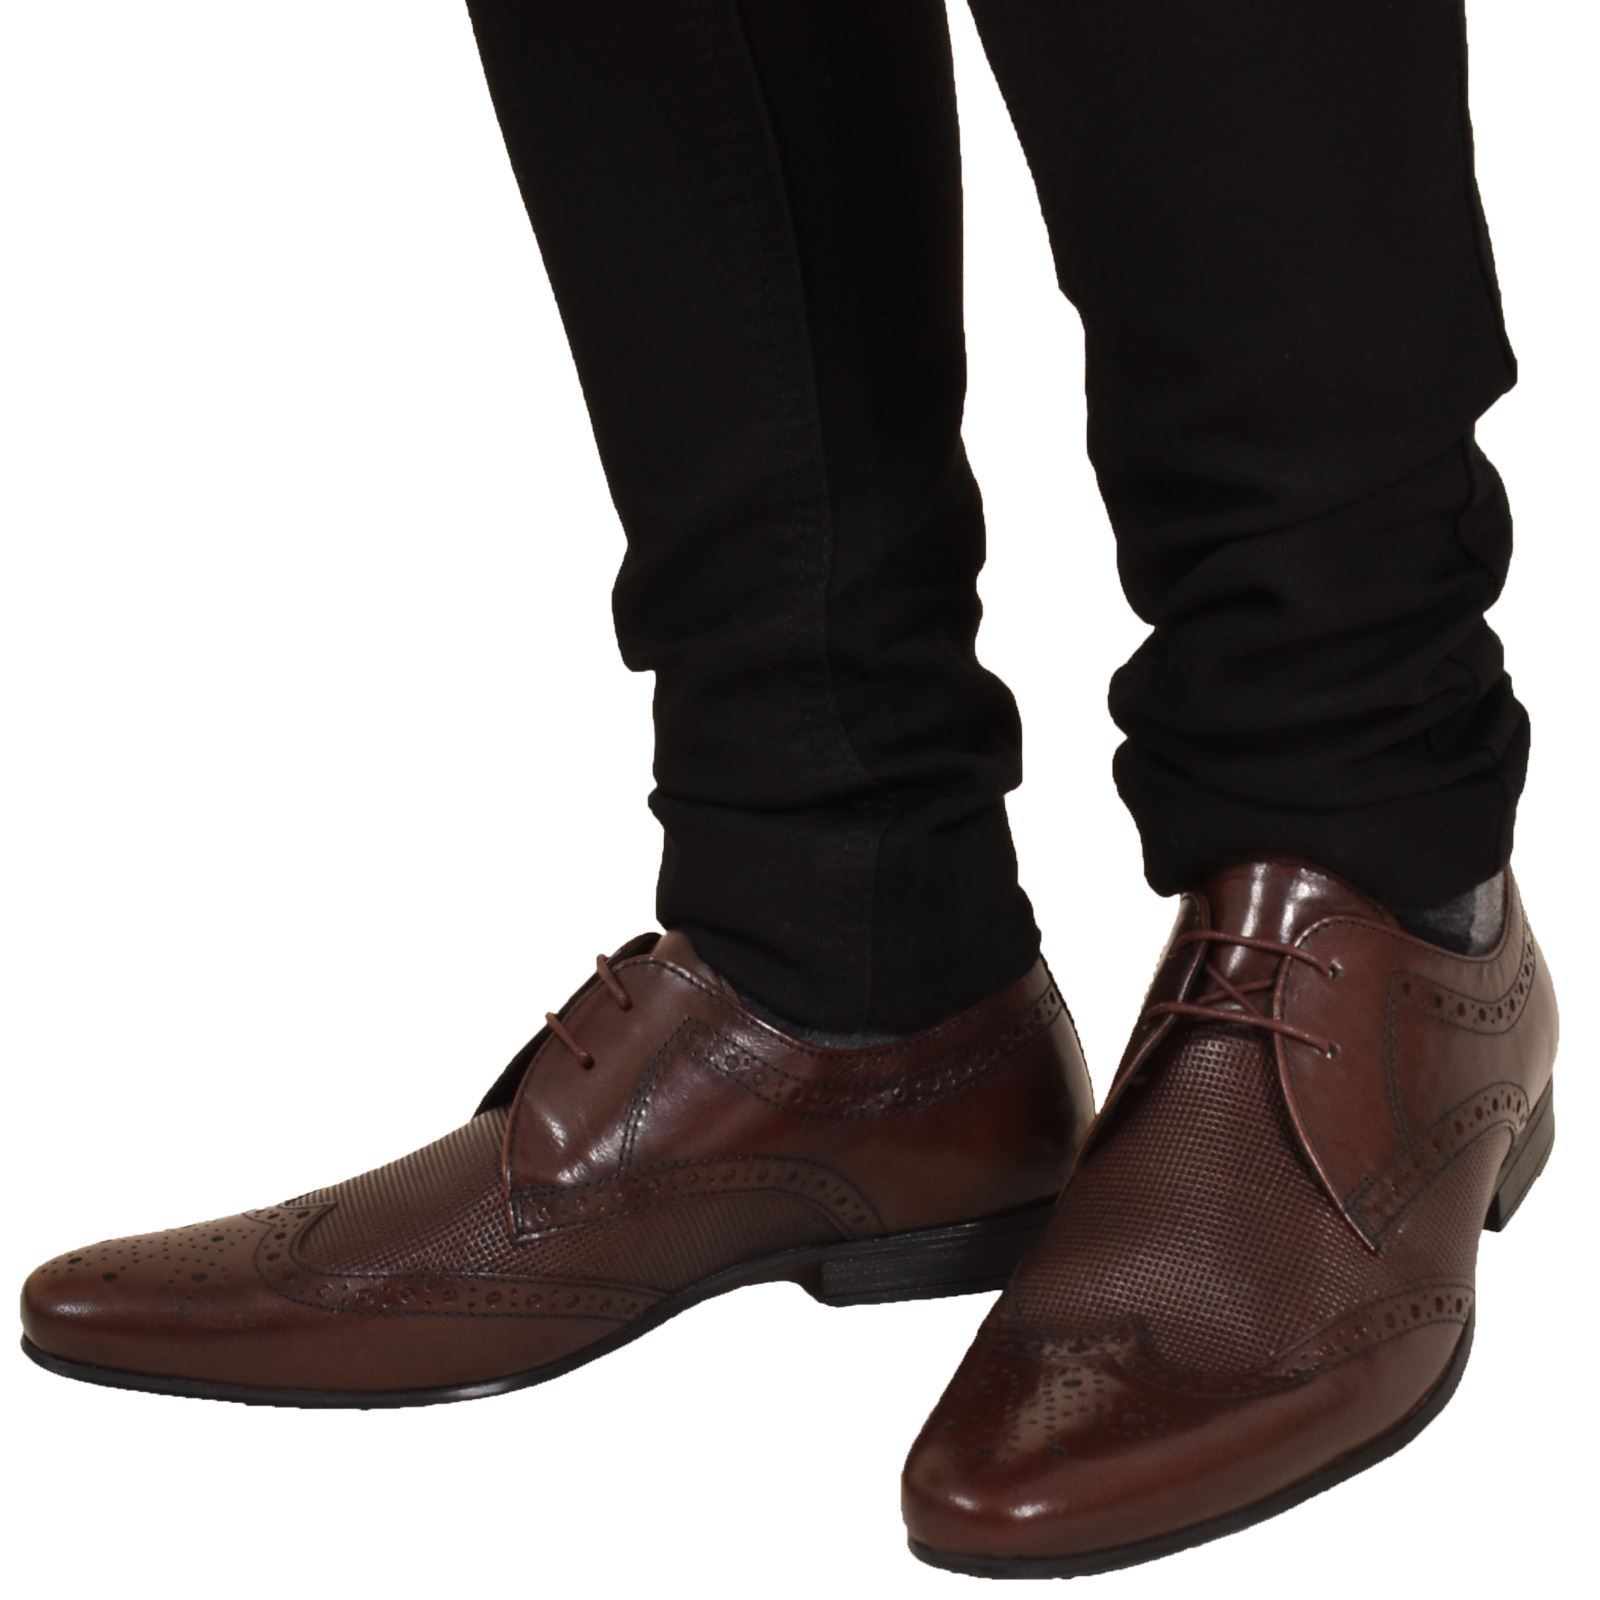 Mens-UK-Style-Leather-Lining-Formal-Office-Wedding-Smart-Work-Brogue-Shoes thumbnail 127